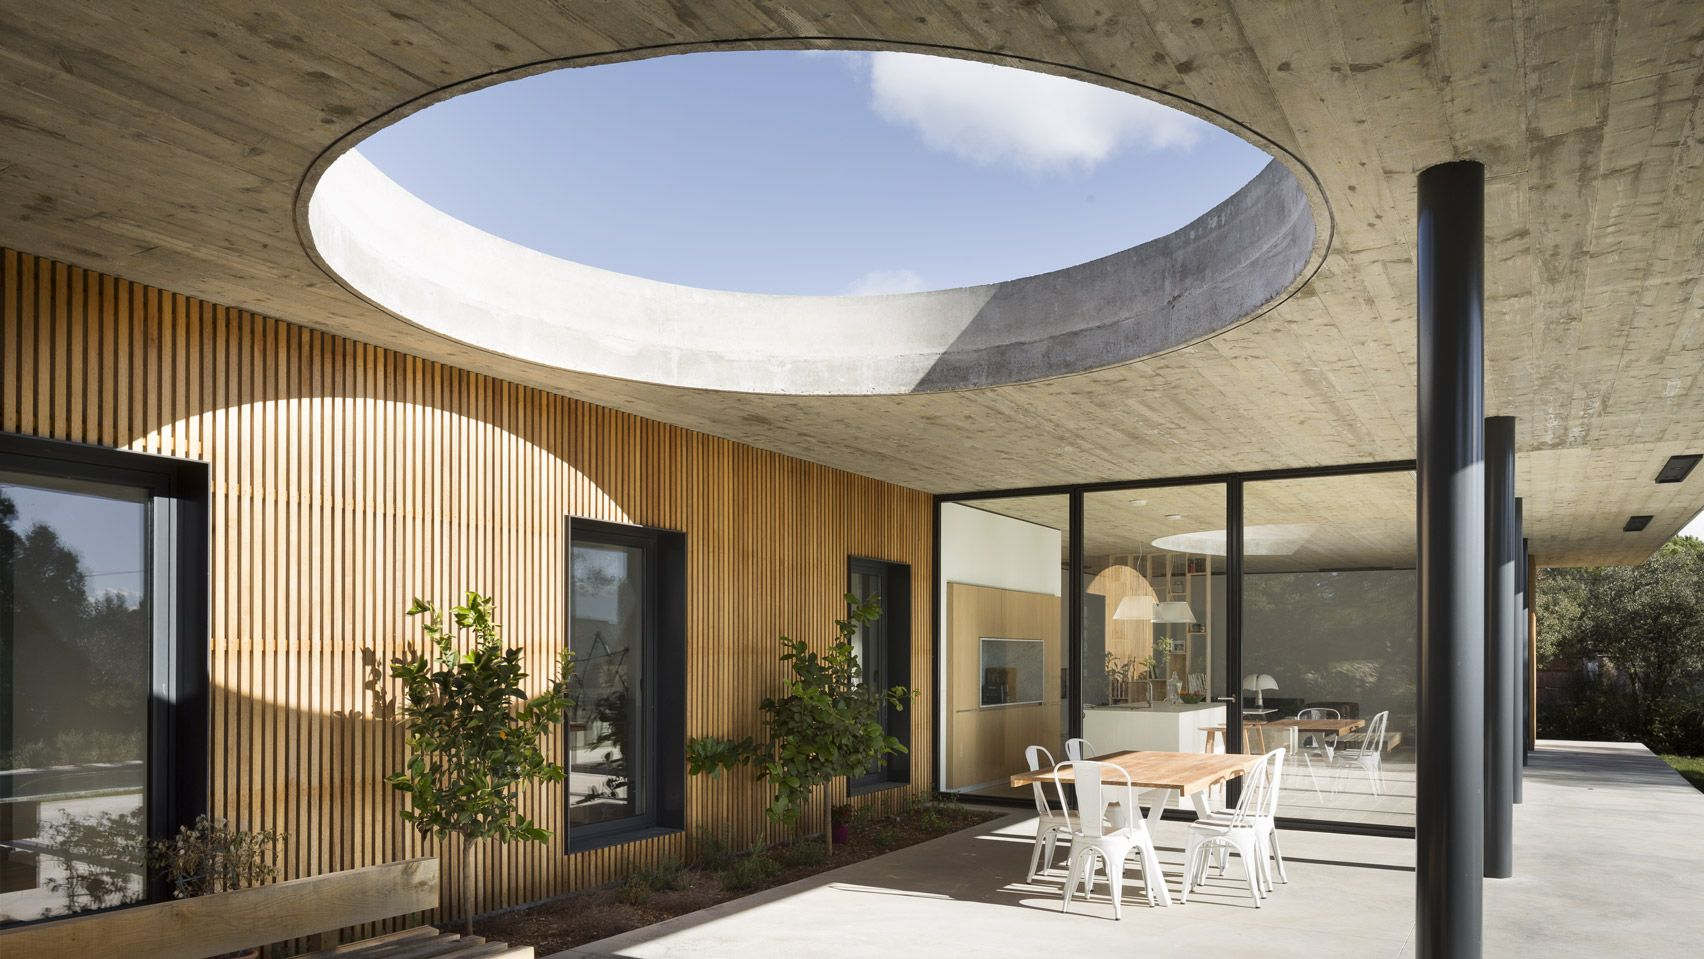 A Huge Round Opening Is Carved Above The Outdoor Dining Area Of This House In Southern France By Pasc Concrete Houses Skylight Architecture Architecture House